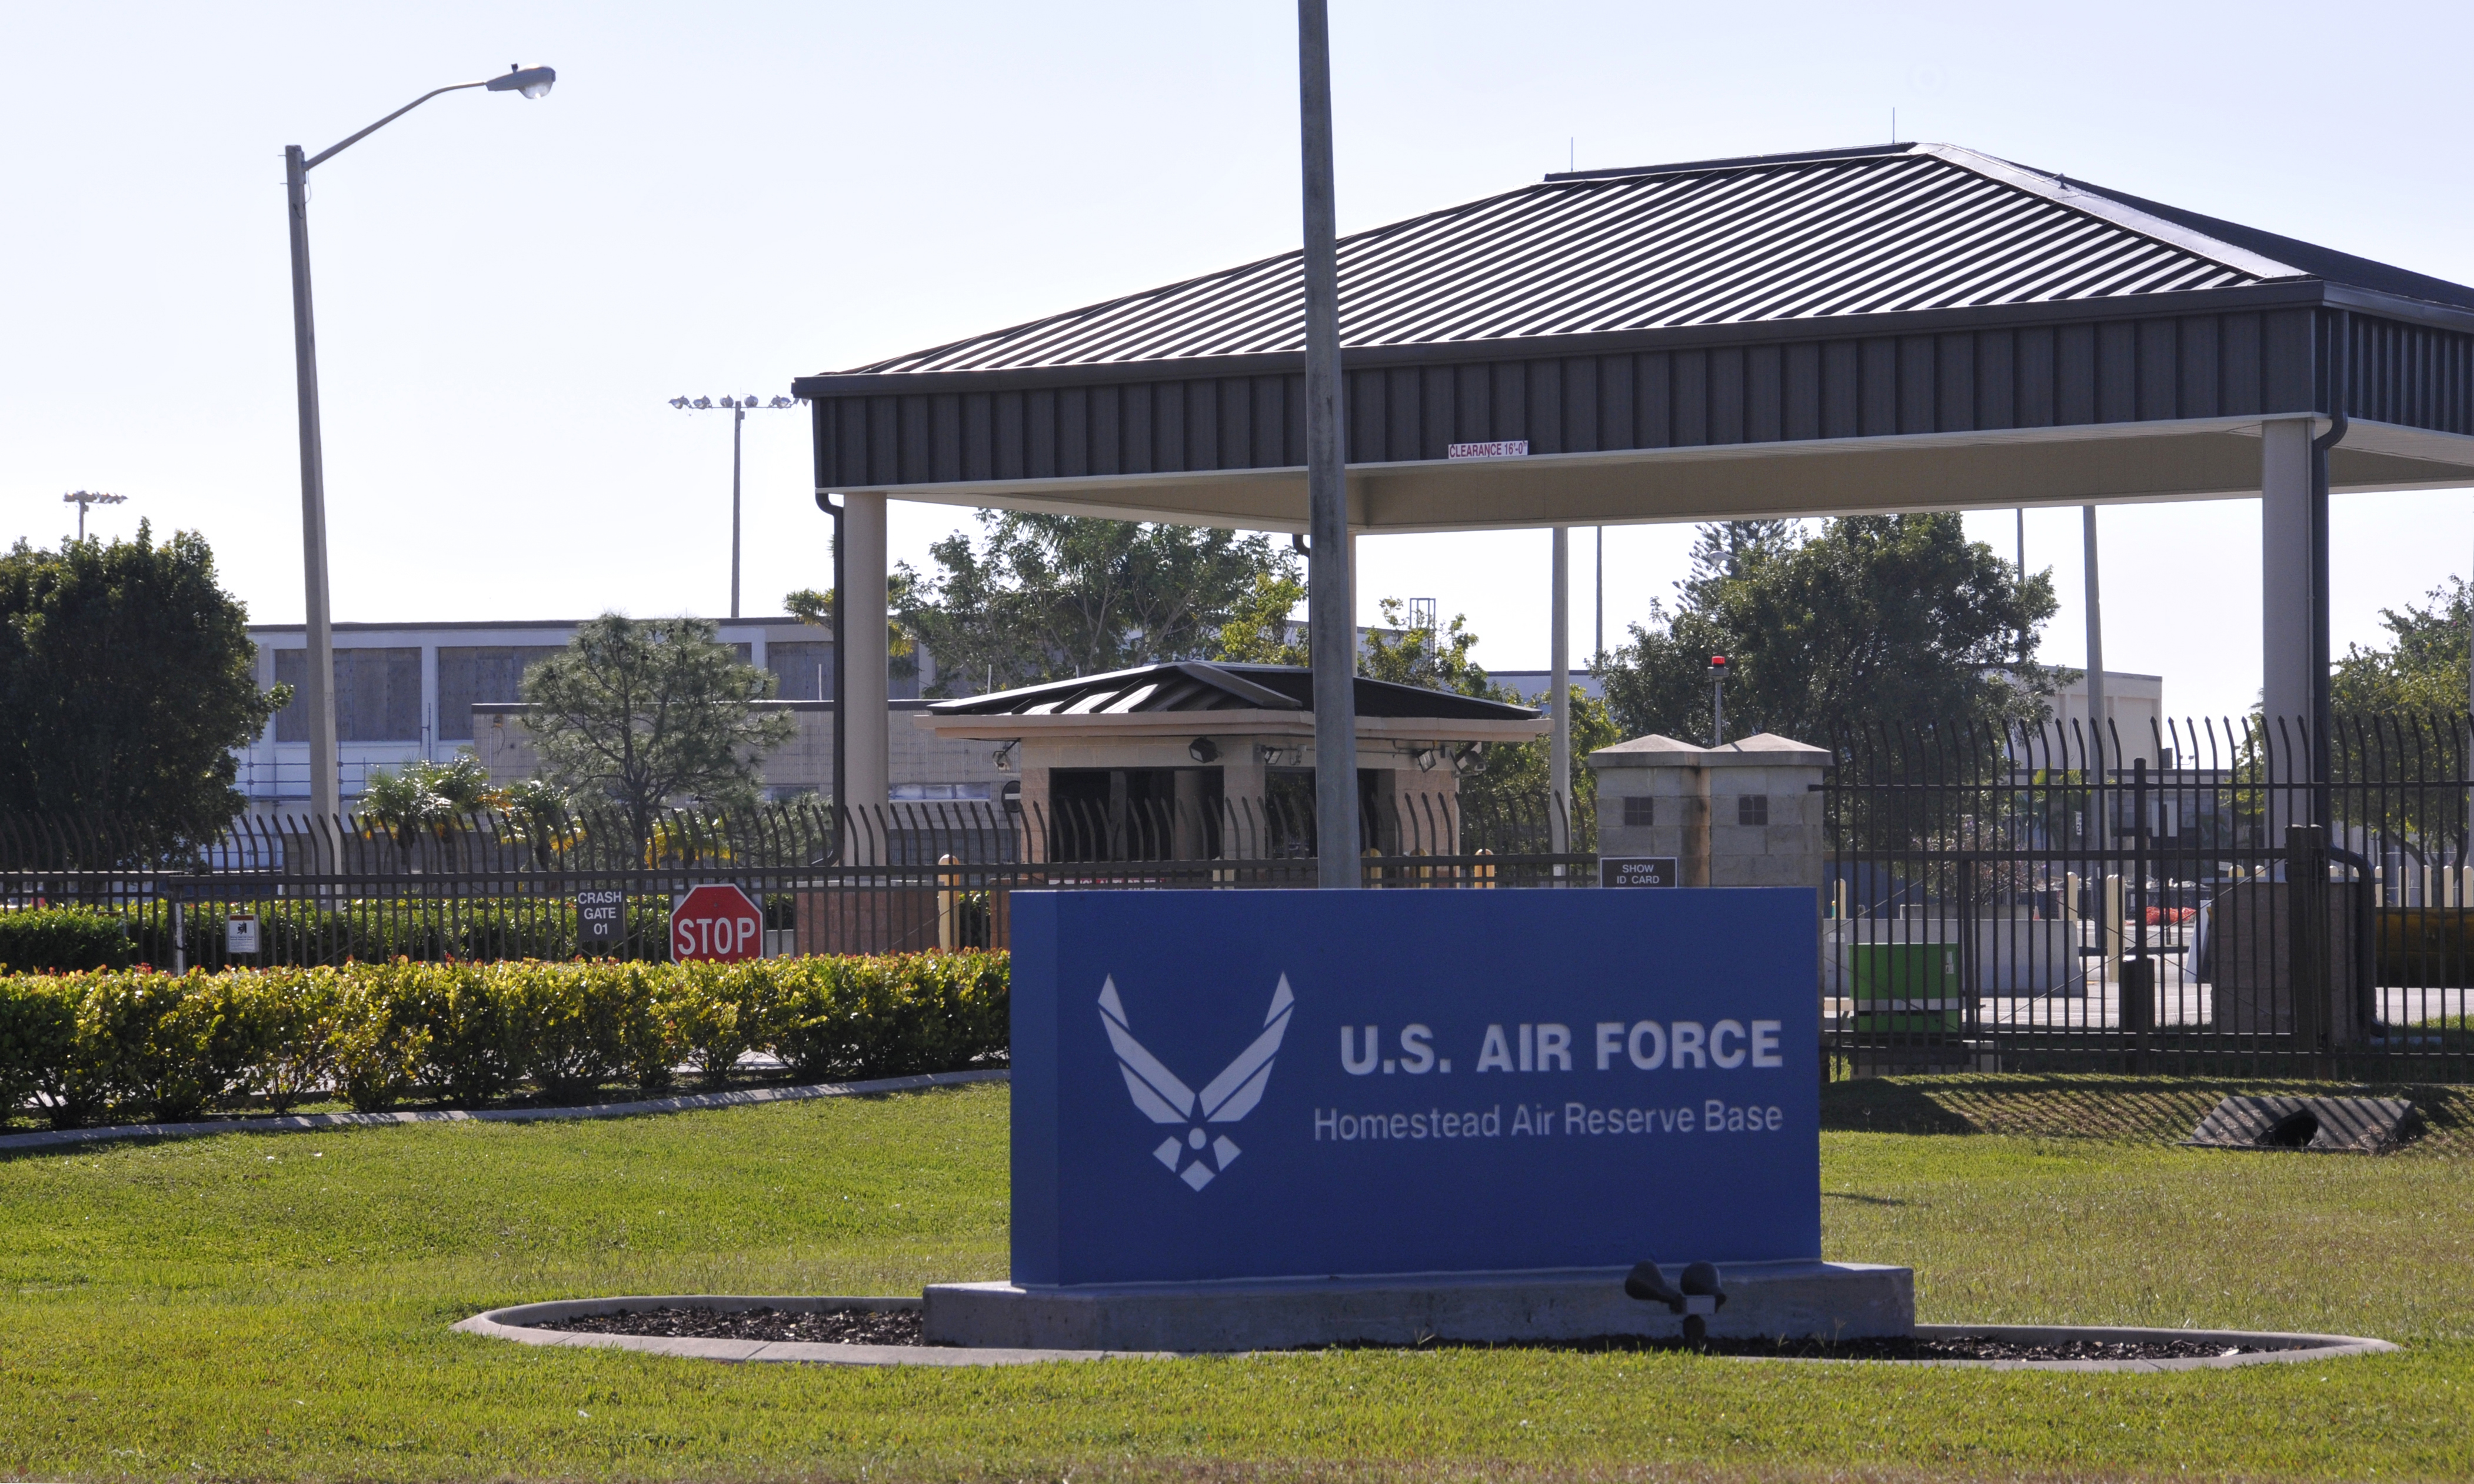 homestead afb mature personals Plentyoffish dating forums are a place to meet singles and get dating advice or  nuclear bomb on a simulated combat mission from homestead air force base in .